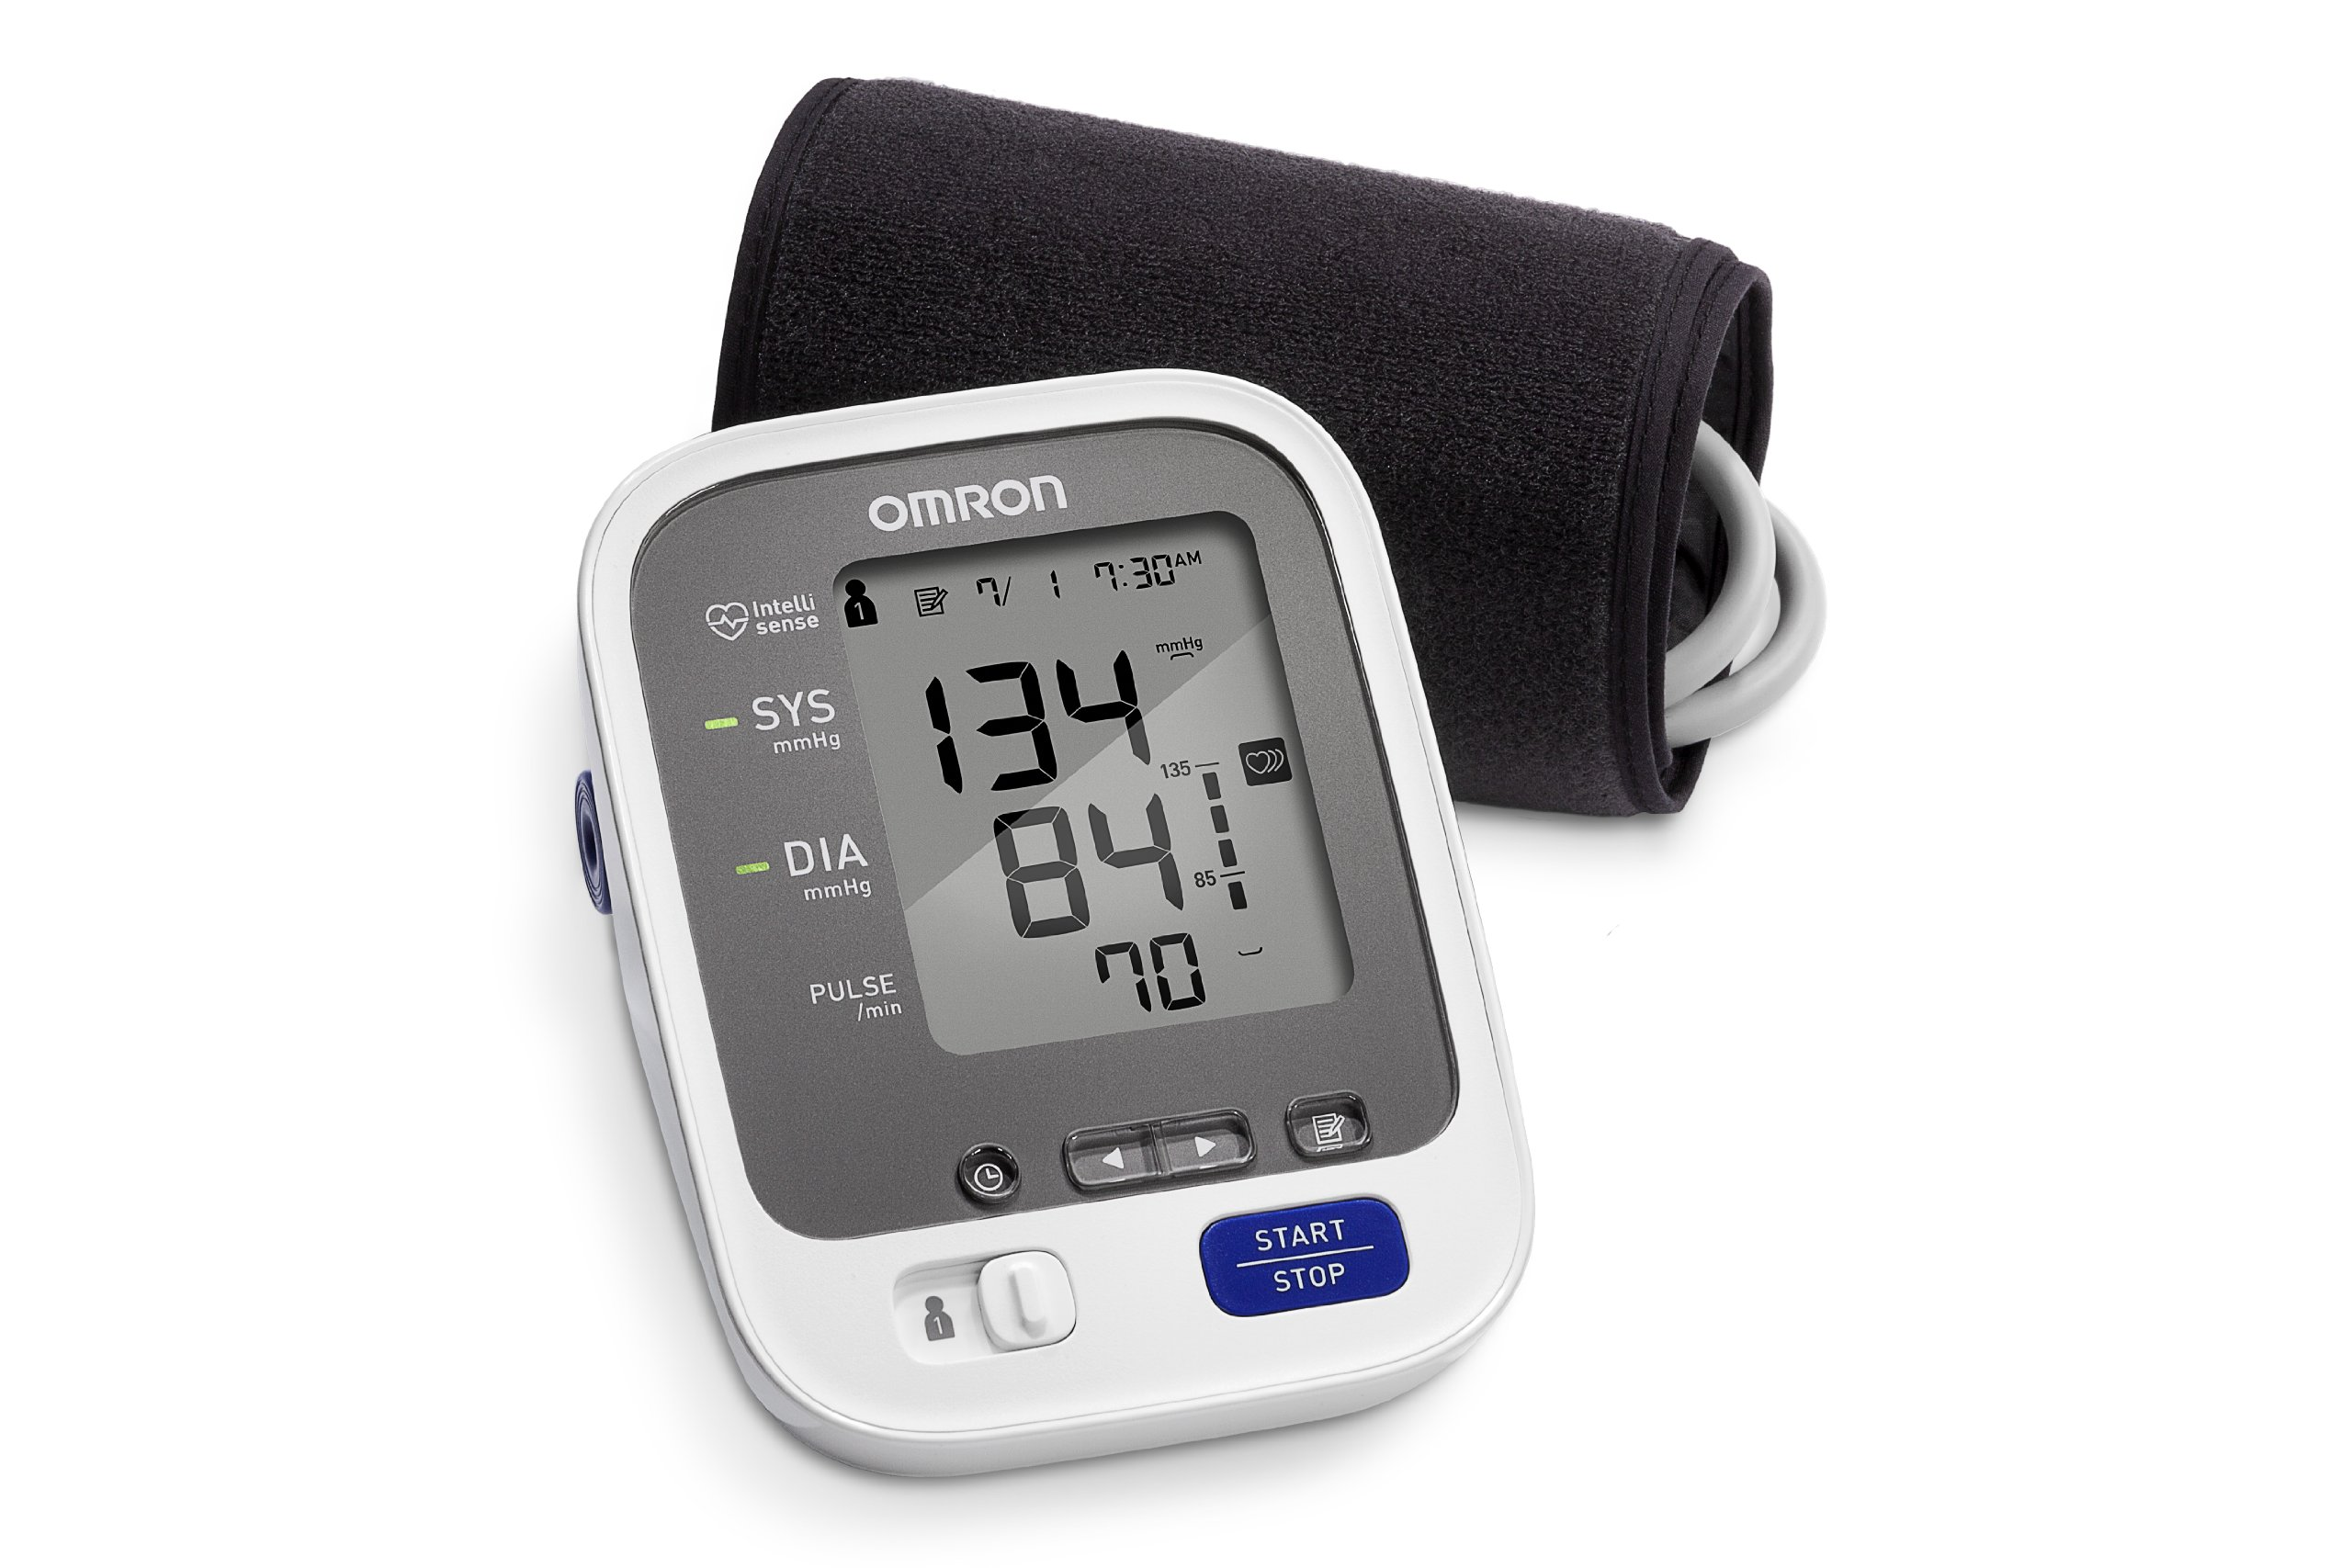 Omron 7 Series Upper Arm Blood Pressure Monitor; 2-User, 120-Reading Memory, Wide-Range Comfit Cuff, BP Indicator LEDs byOmron by Omron